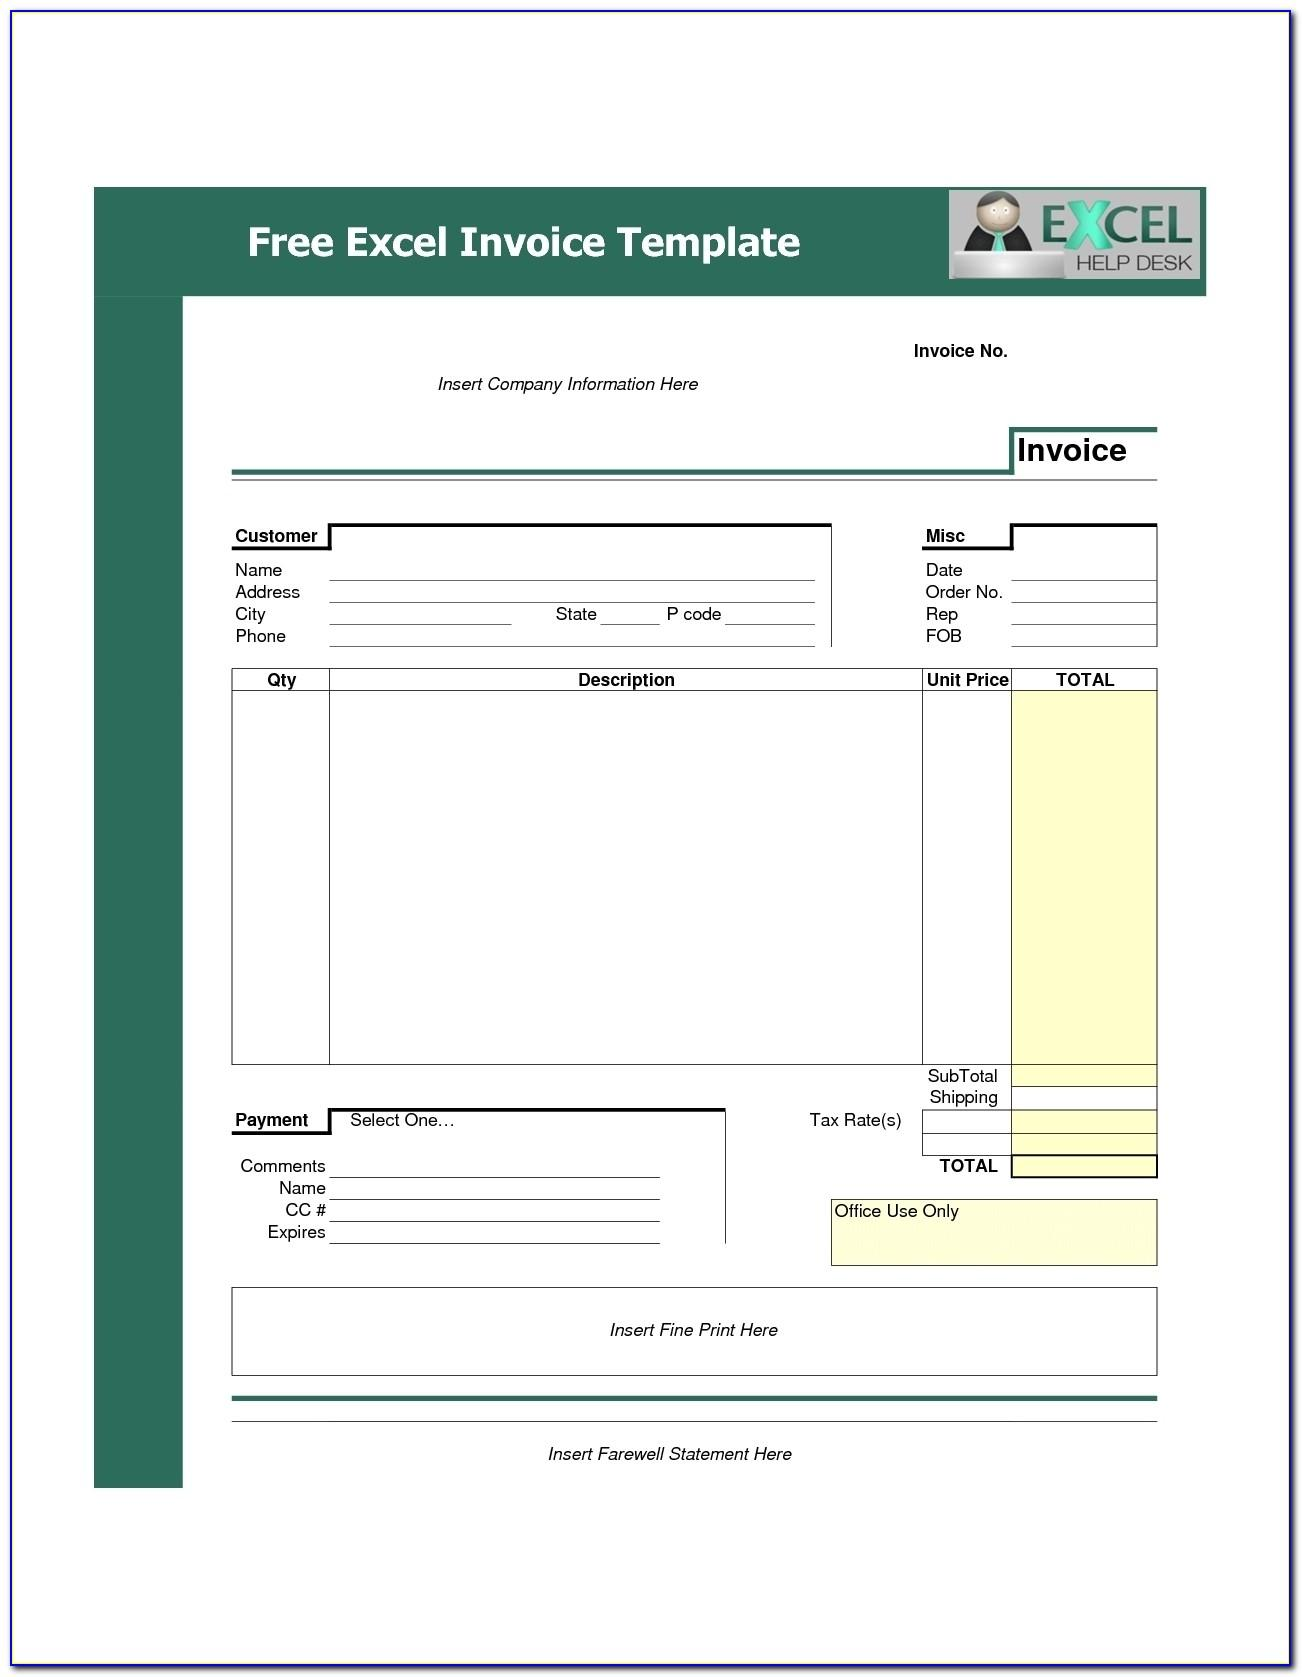 Sample Invoice Template Free Excel